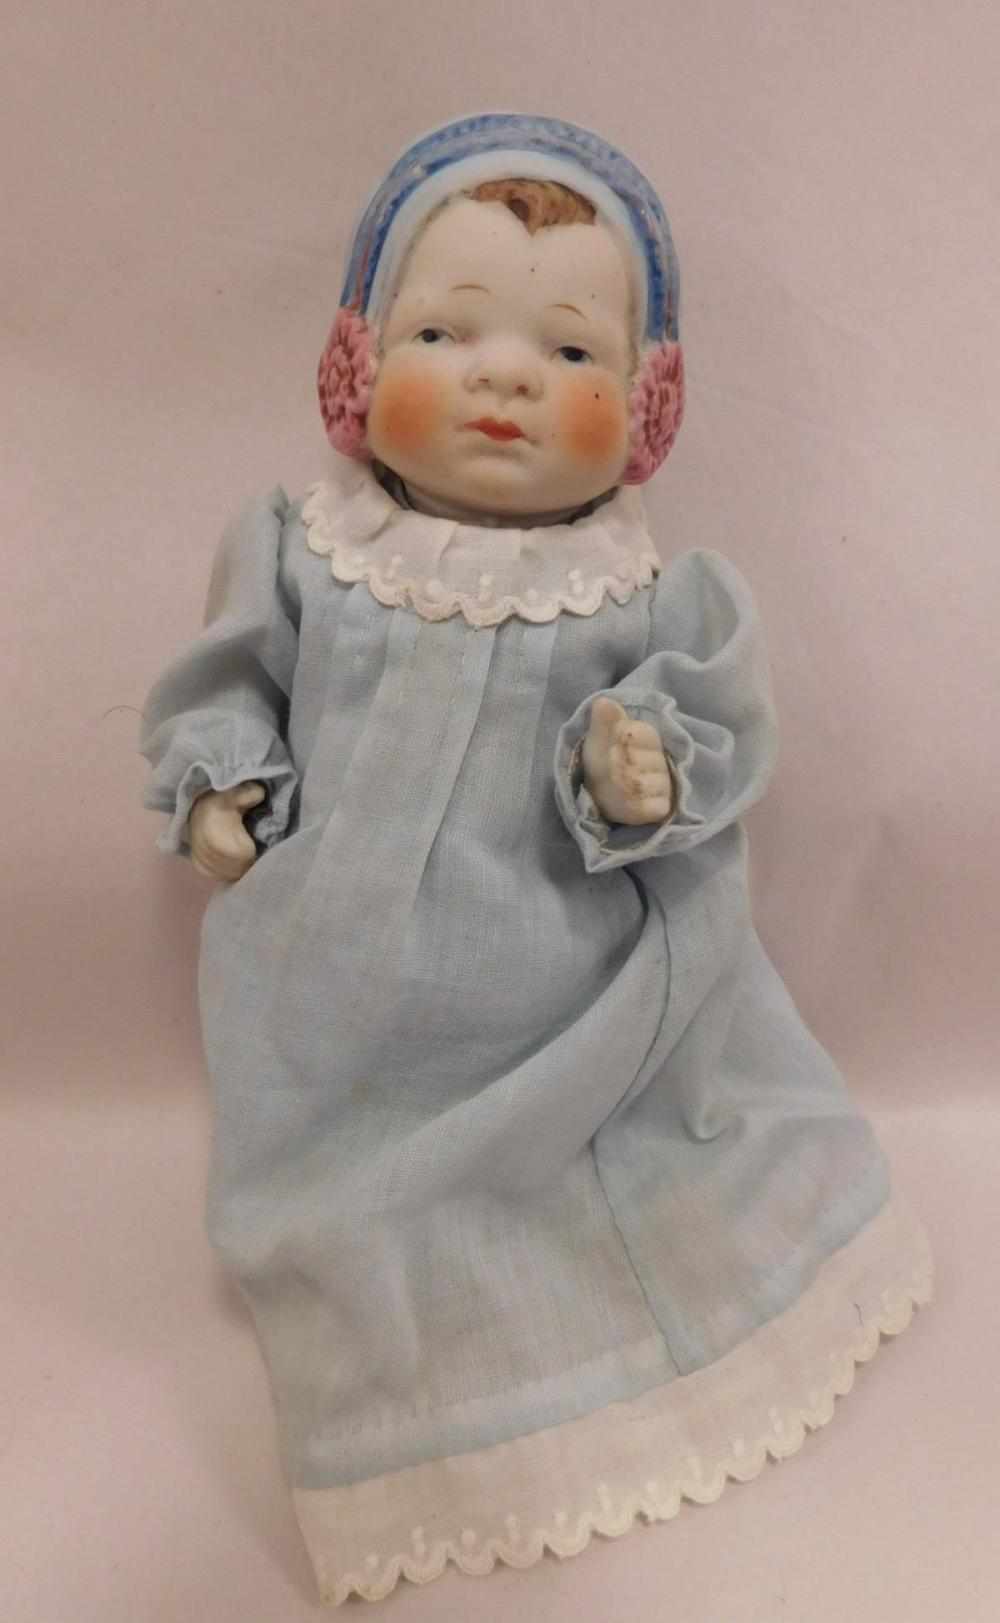 SWEET BONNET DOLL BISQUE GERMAN GERMANY VINTAGE ANTIQUE